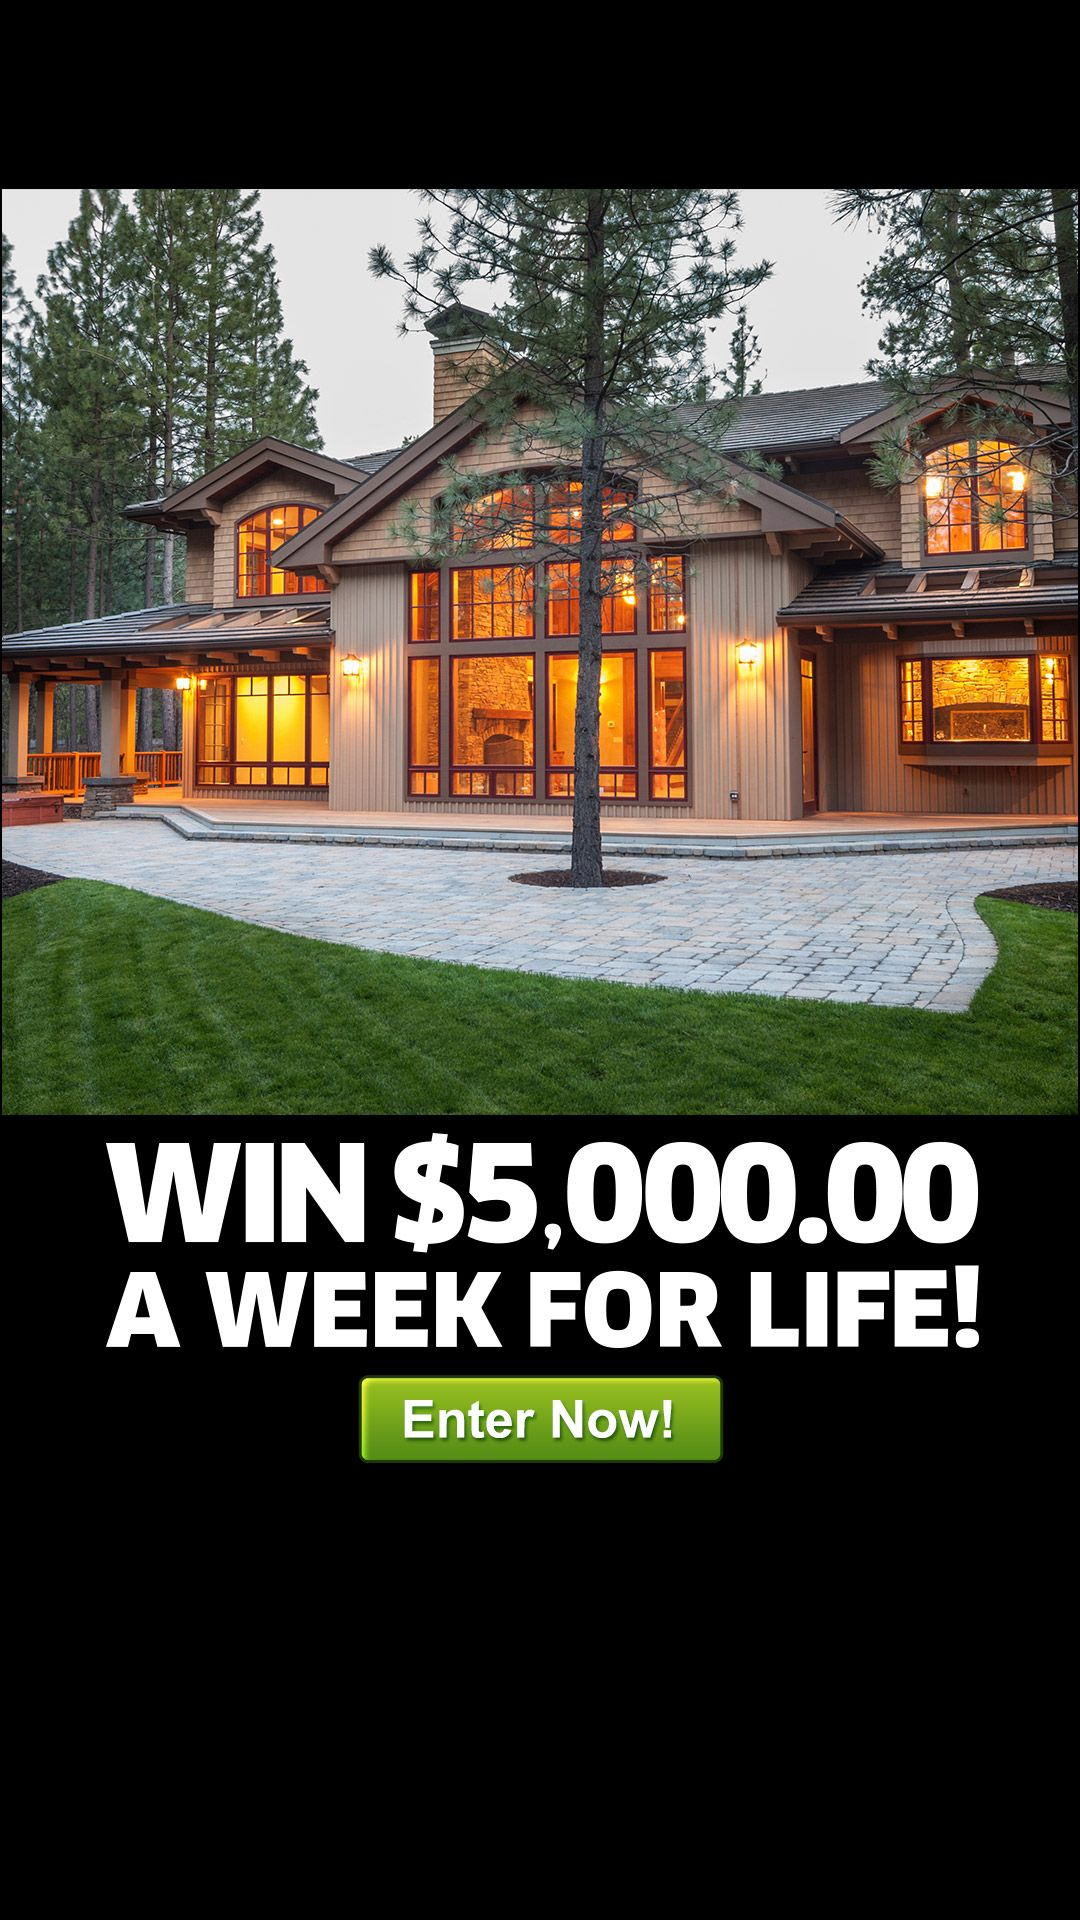 Don't miss your shot at WINNING MILLIONS! Enter for free and you